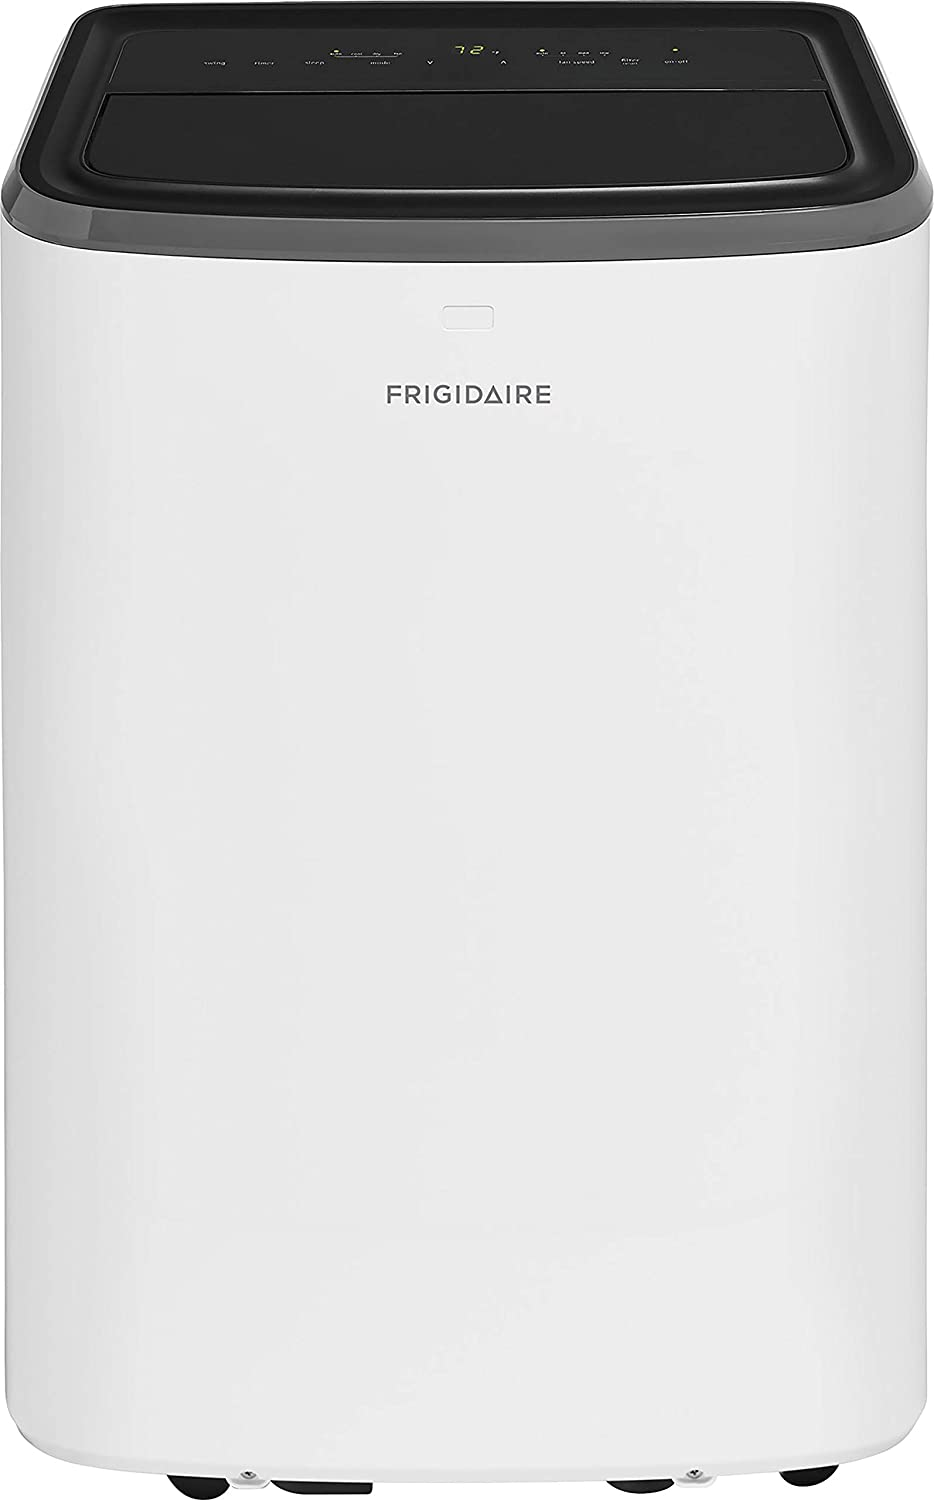 FRIGIDAIRE FFPA0822U1 Portable Remote Control for Rooms Up to 350-Sq. Ft, White Air Conditioner, 8,000 BTU,